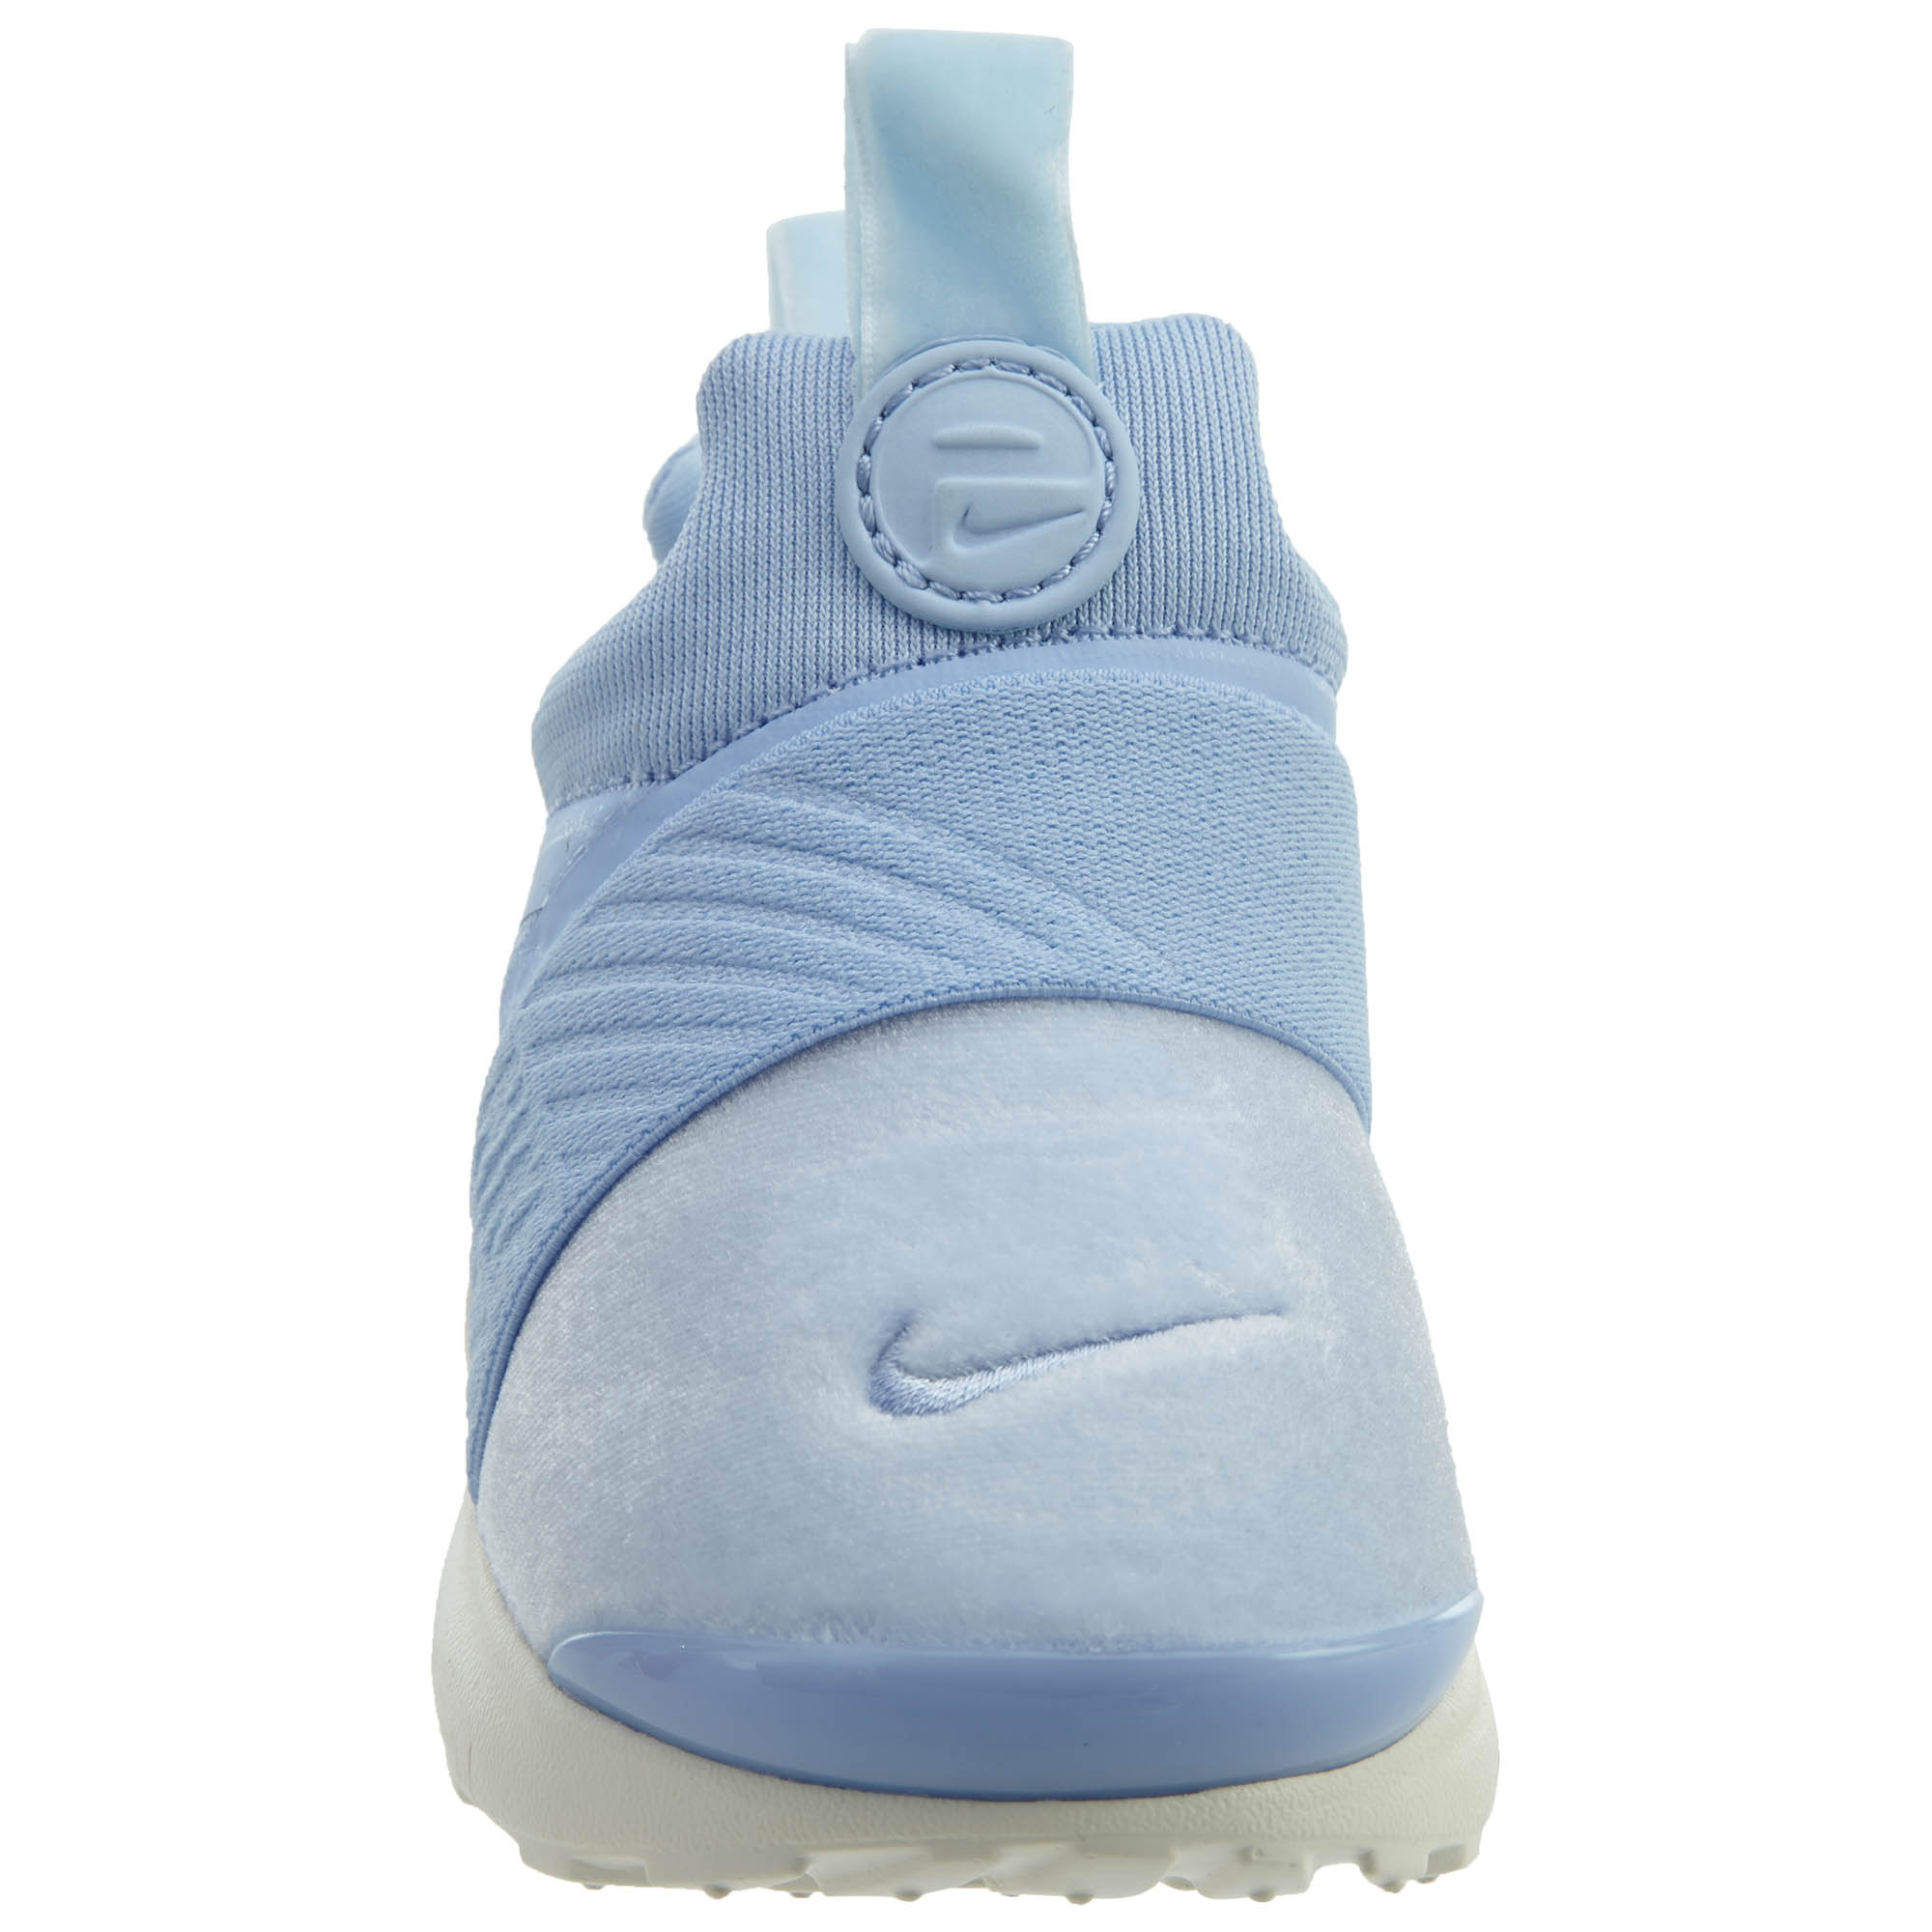 Light Blue AA3514-400 NEW IN BOX NIKE Presto Extreme SE Shoes